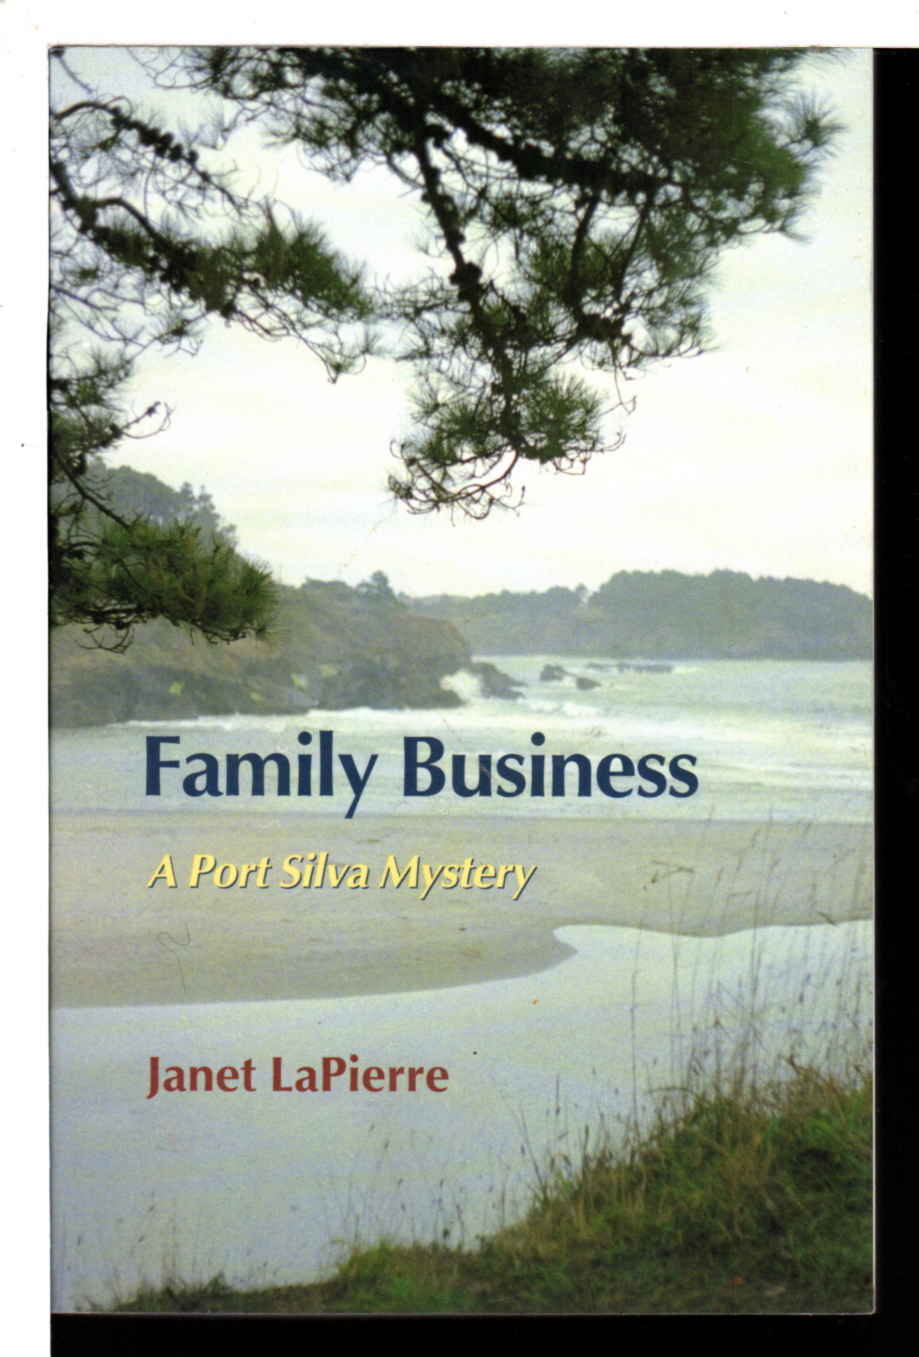 LAPIERRE, JANET - FAMILY BUSINESS: A Port Silva Mystery.